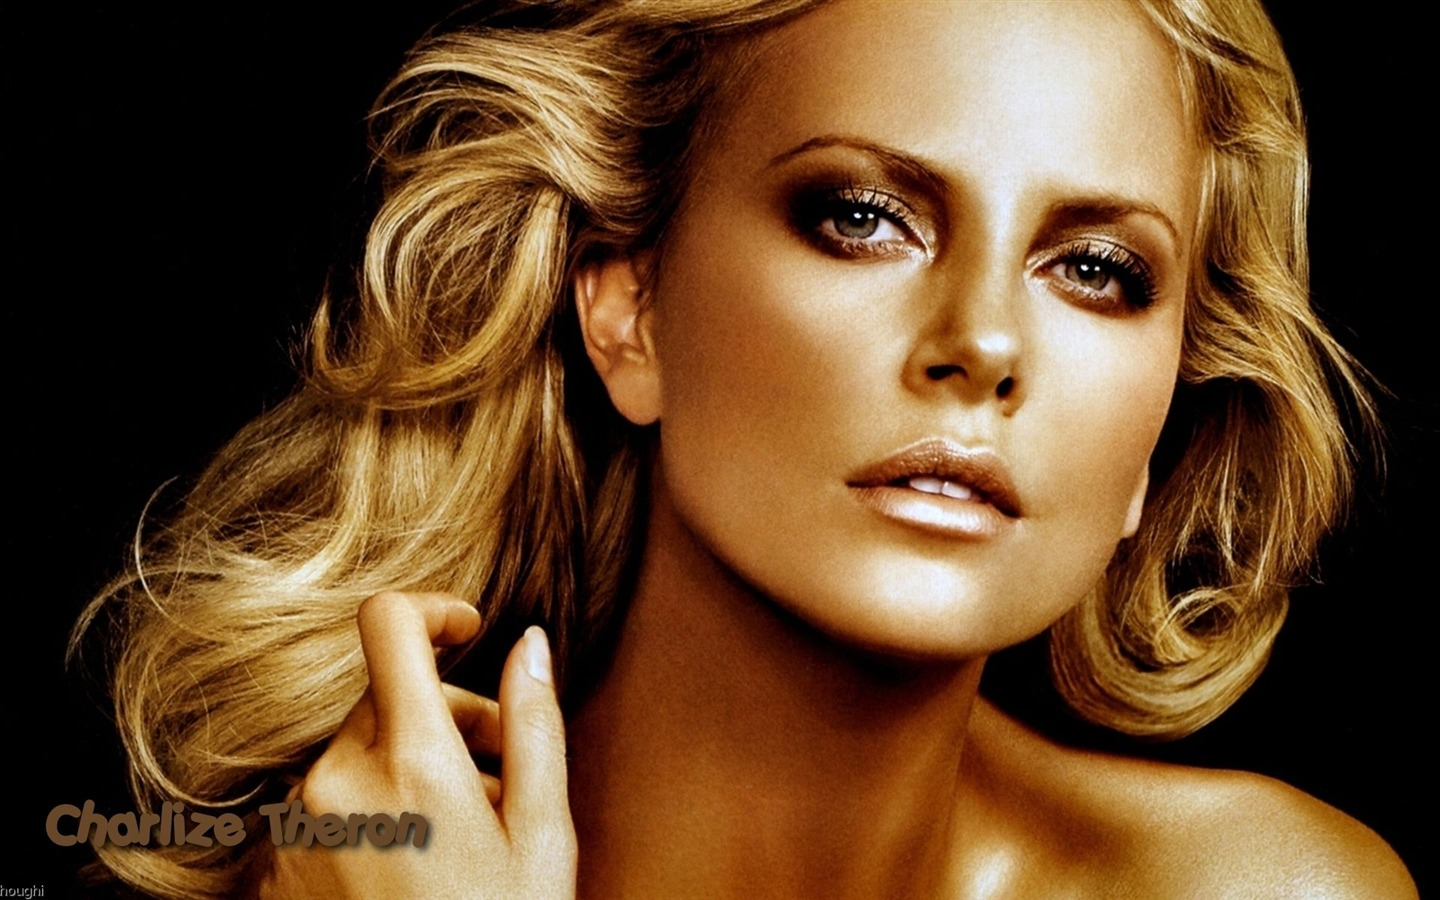 Charlize Theron #072 - 1440x900 Wallpapers Pictures Photos Images